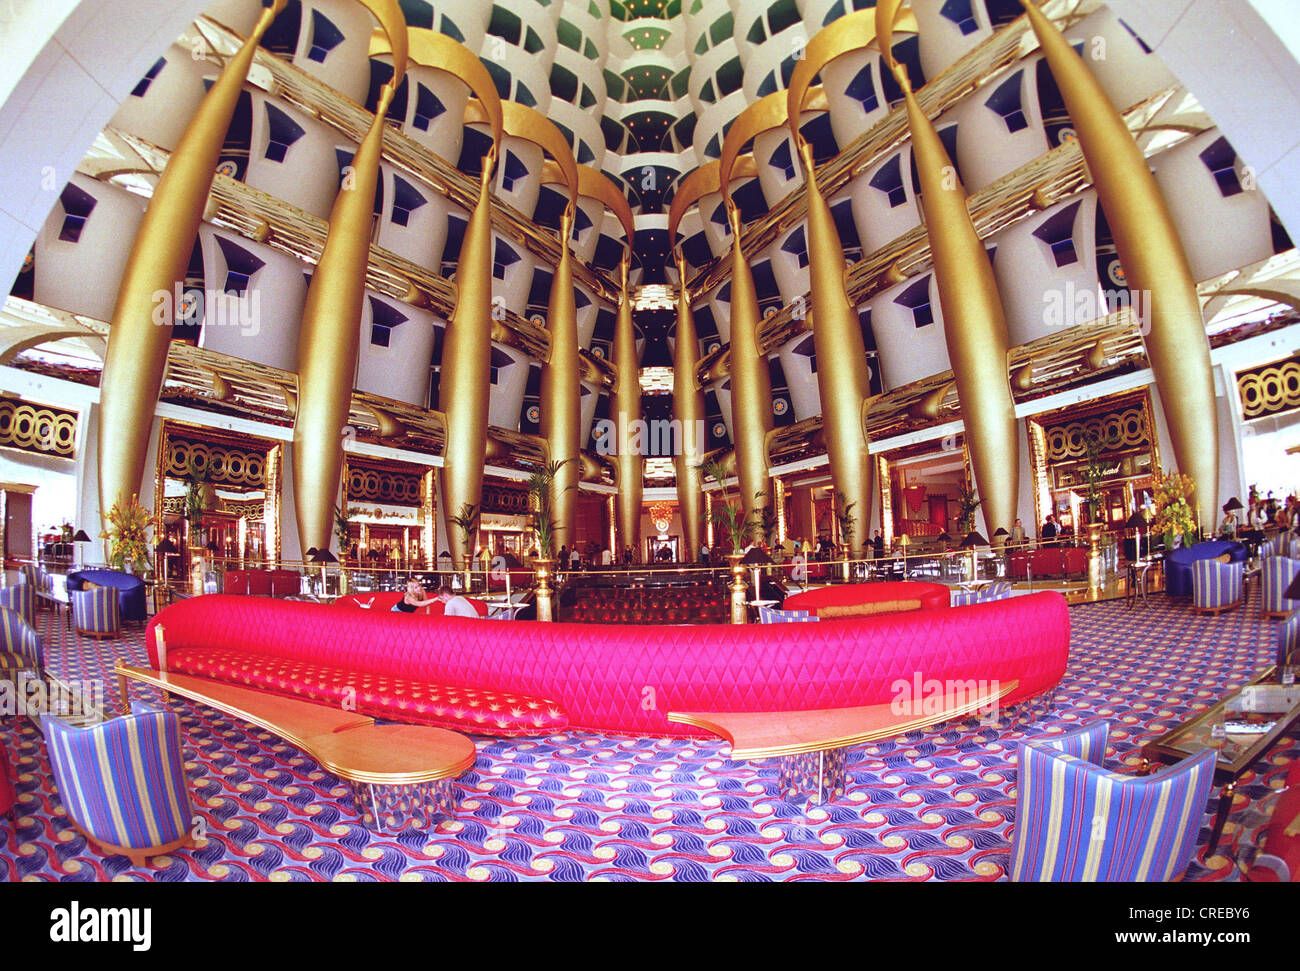 burj al arab the most expensive hotel in the world dubai